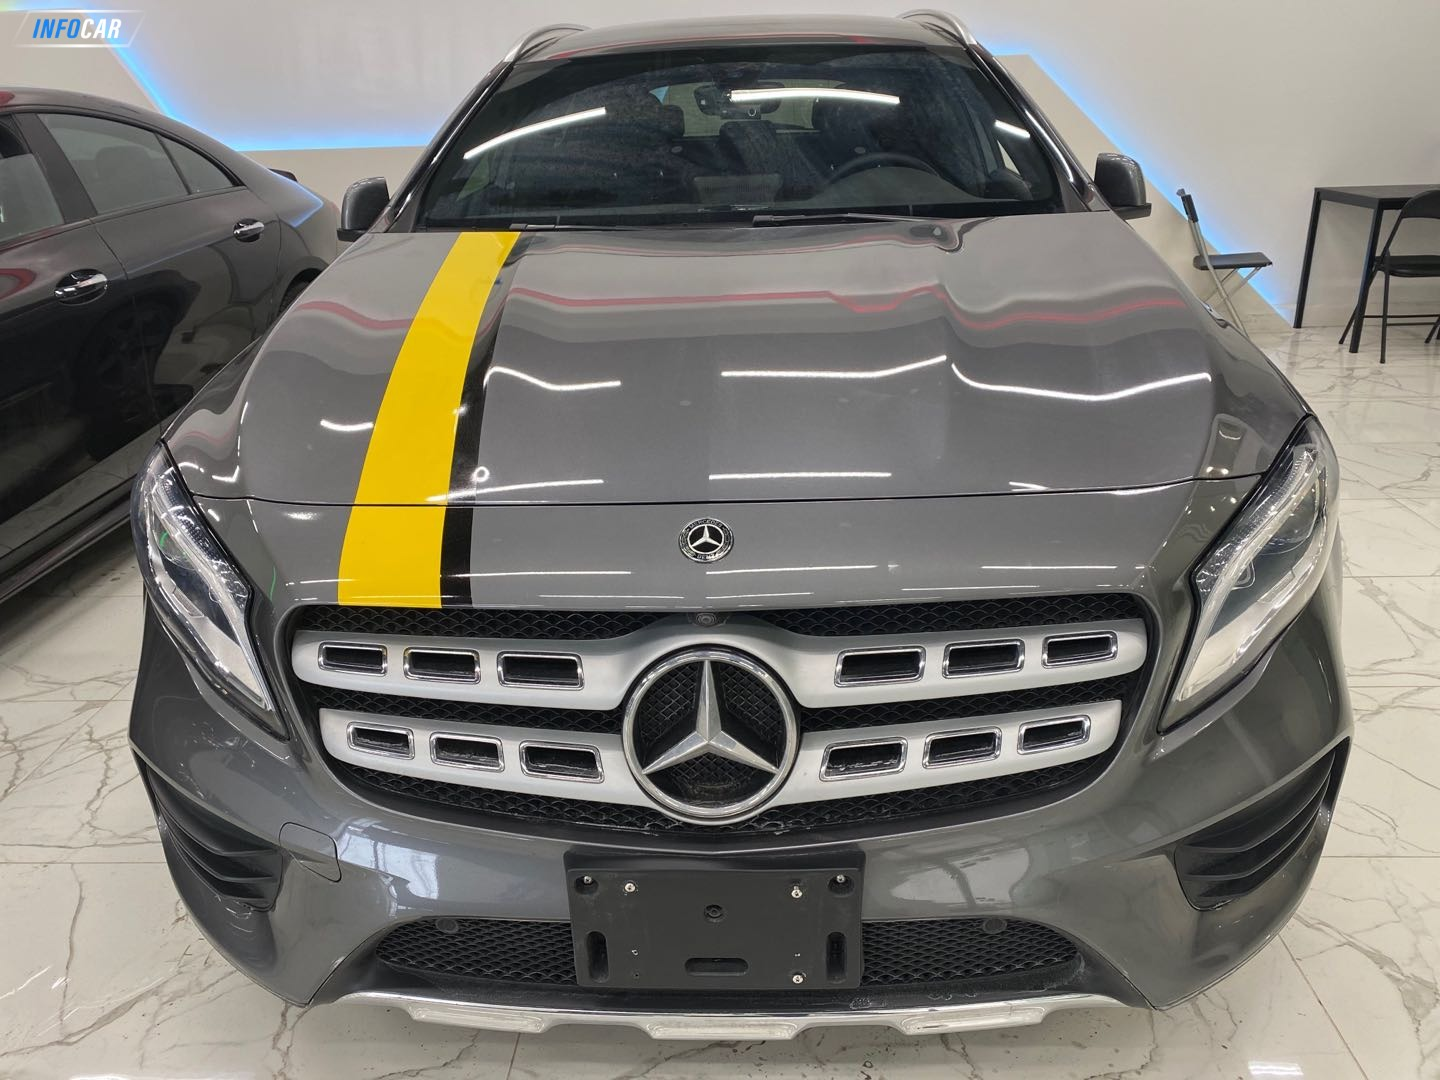 2018 Mercedes-Benz GLA-Class 250 - INFOCAR - Toronto's Most Comprehensive New and Used Auto Trading Platform